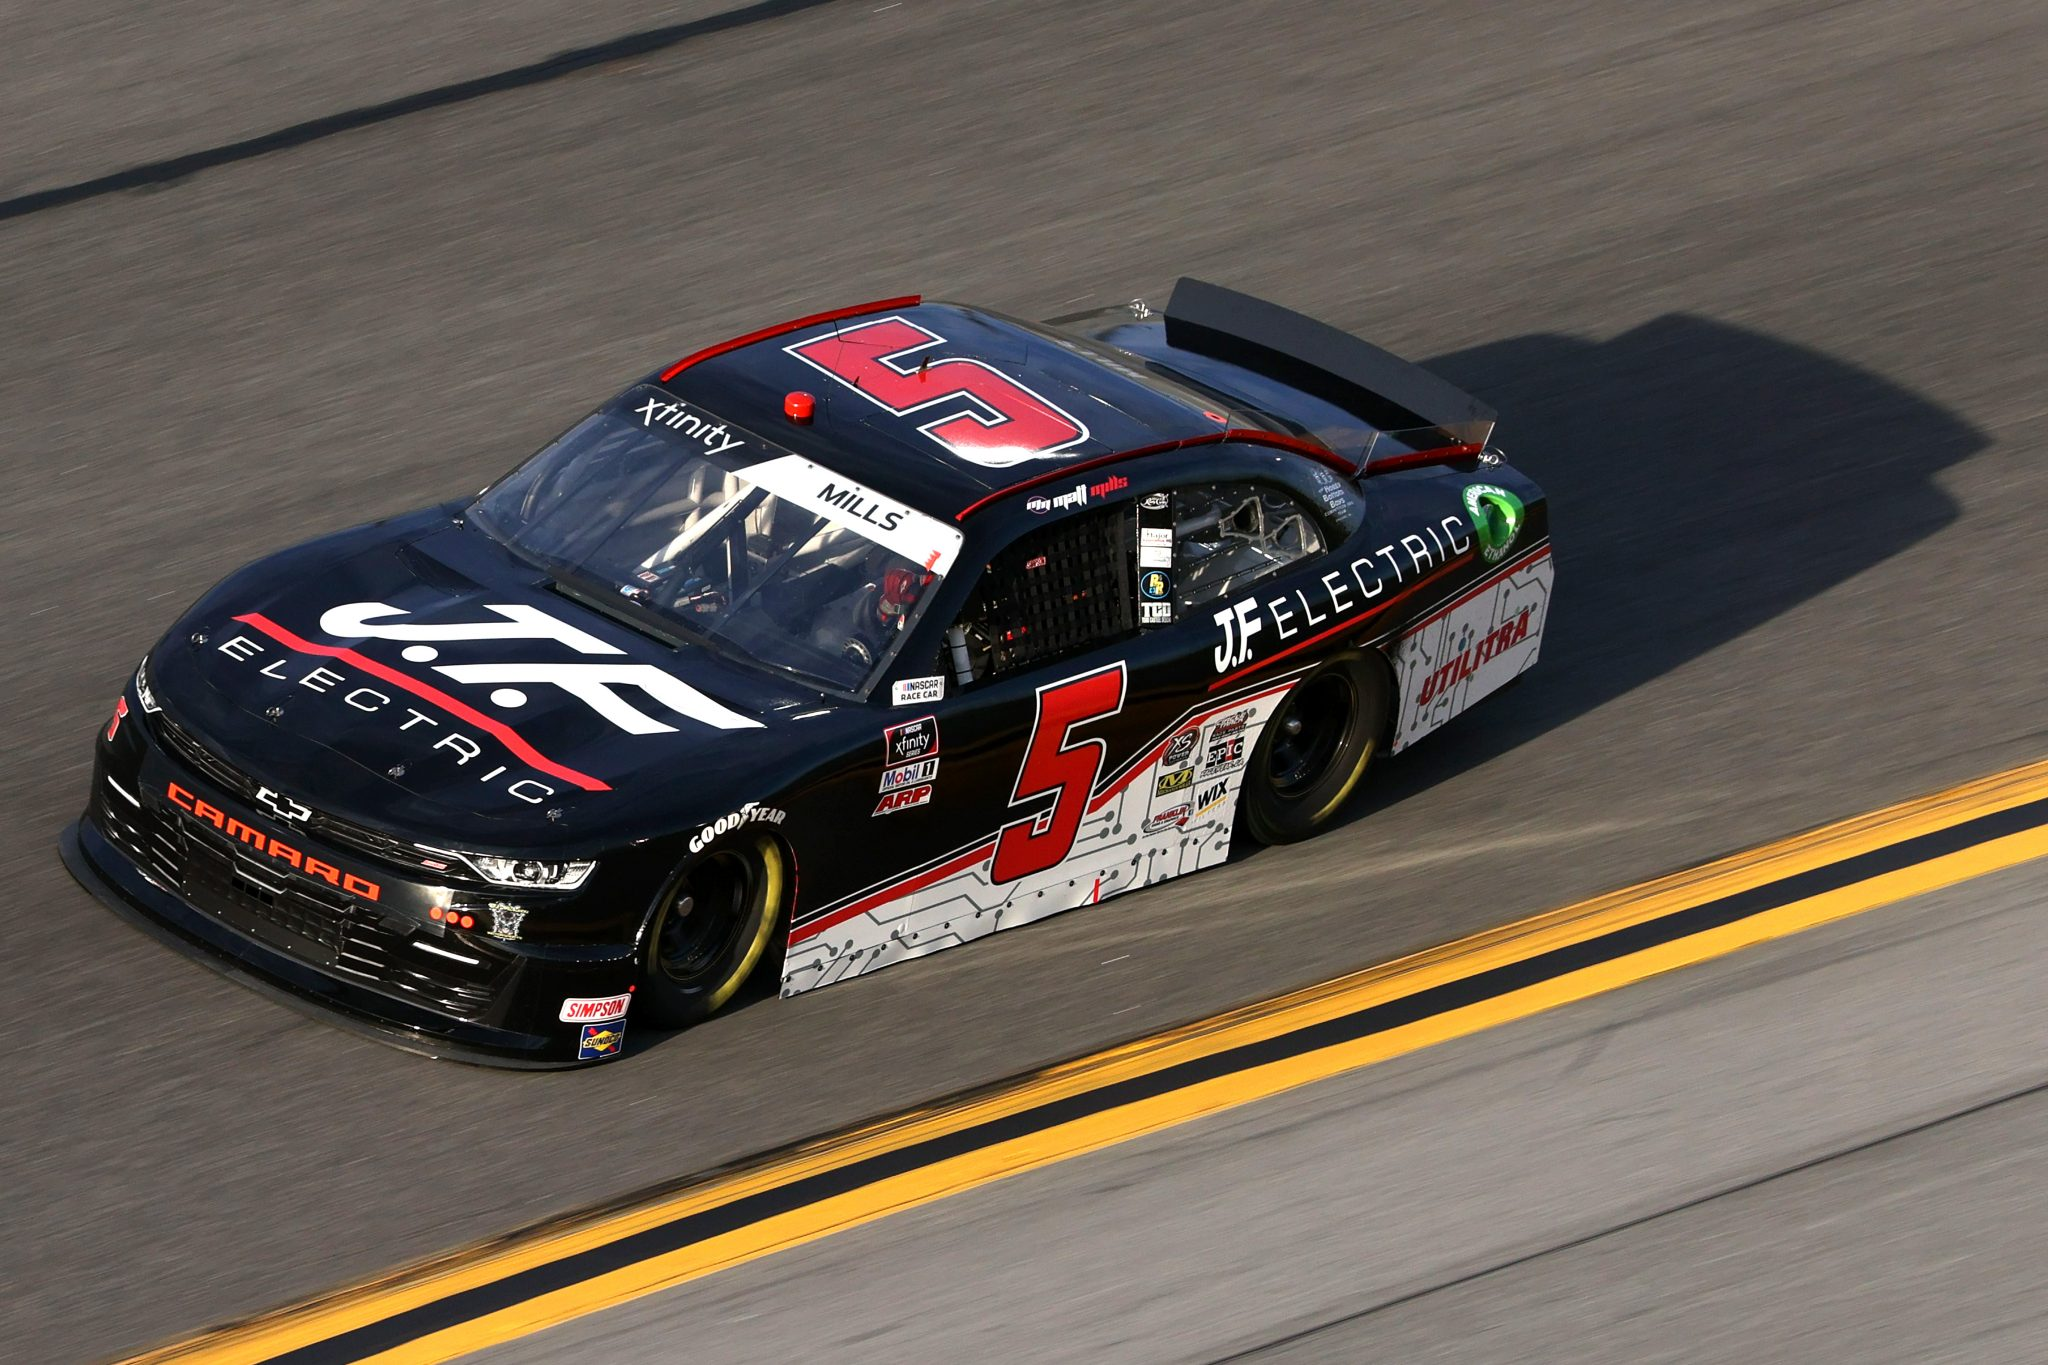 DAYTONA BEACH, FLORIDA - FEBRUARY 12: Matt Mills, driver of the #5 JF Electric Chevrolet, practices for the NASCAR Xfinity Series Beef. It's What's For Dinner. 300 at Daytona International Speedway on February 12, 2021 in Daytona Beach, Florida. (Photo by James Gilbert/Getty Images) | Getty Images